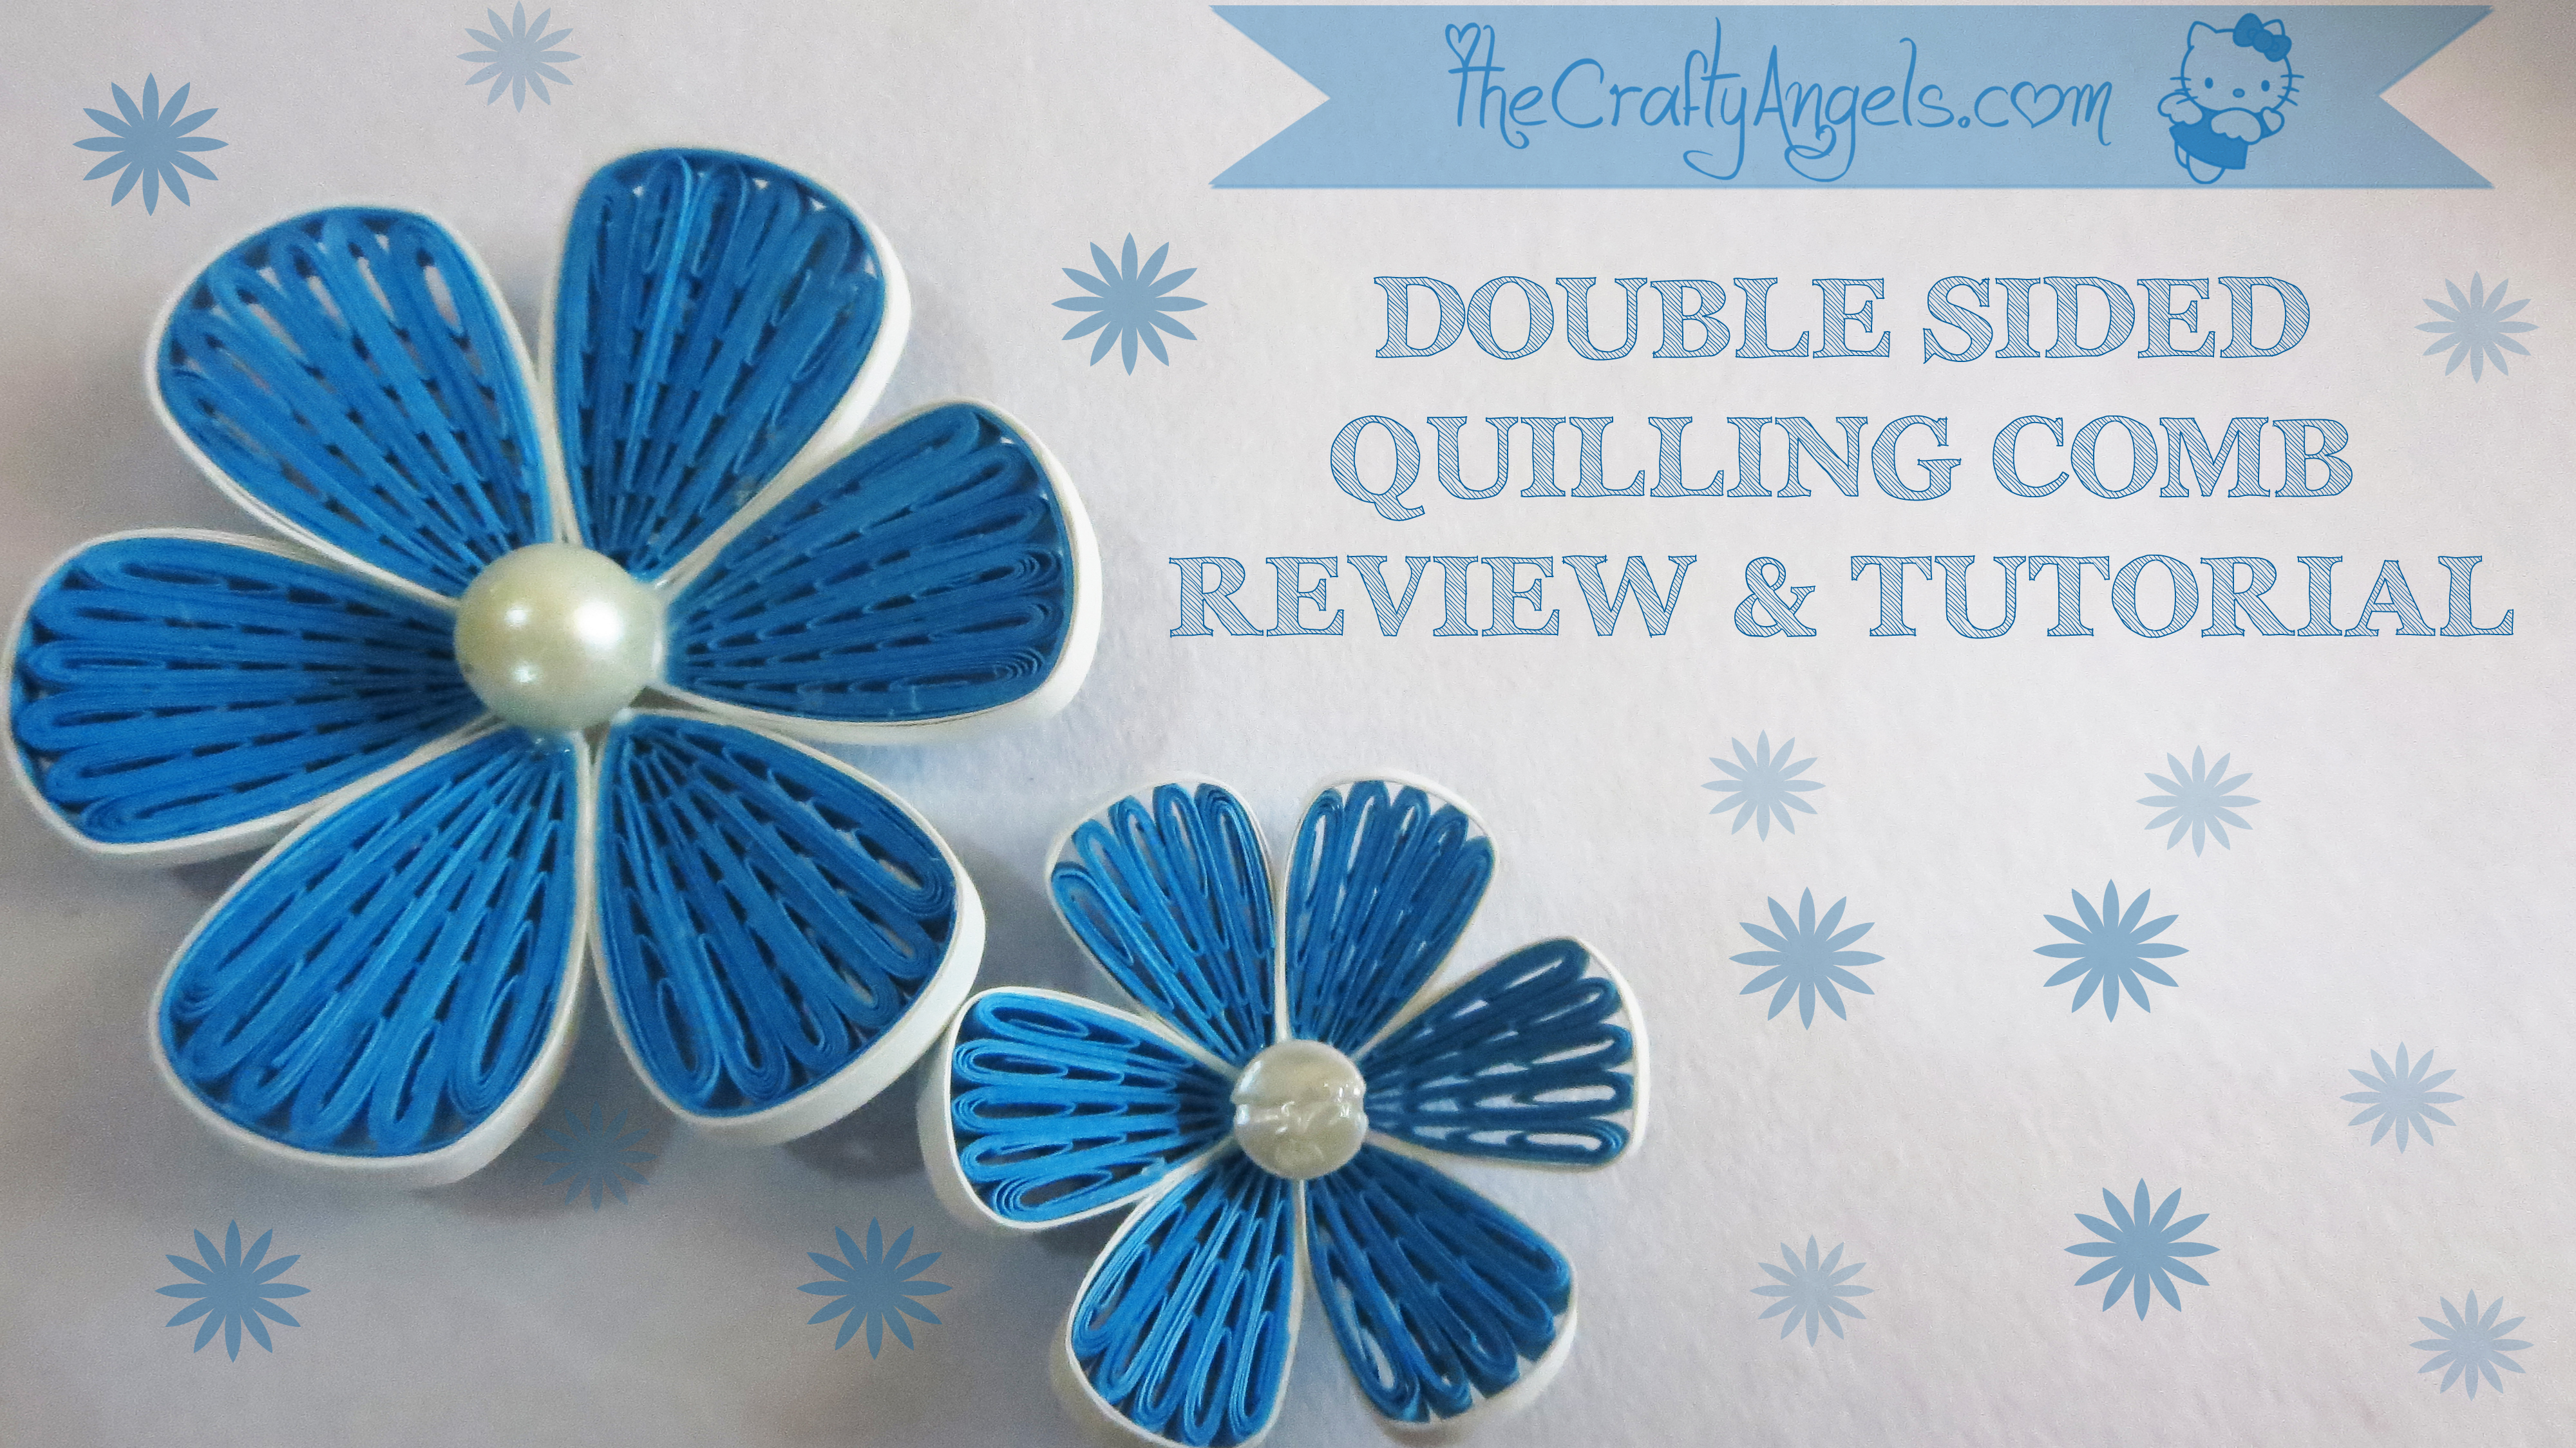 Double Sided Quilling Comb Review Tutorial